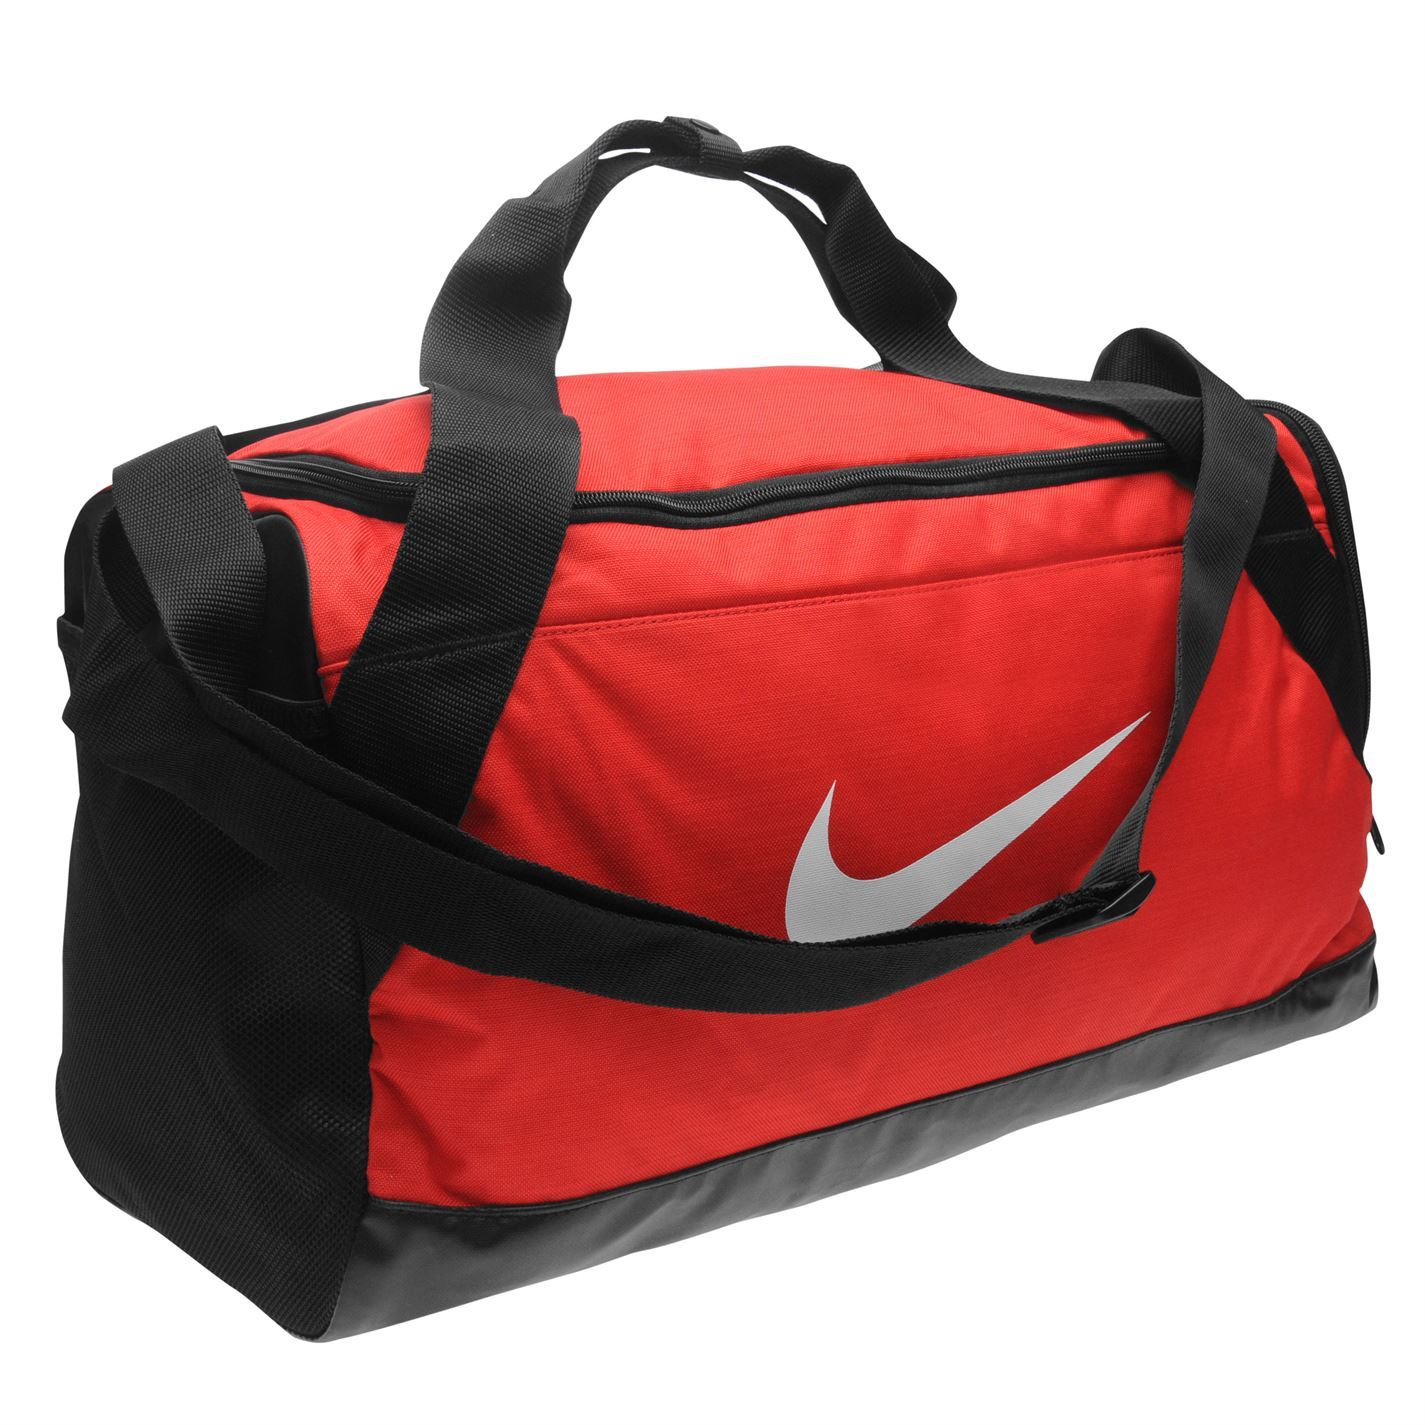 ... Nike Brasilia Small Grip Sports Holdall Red Gym Kit Bag Carryall ... 1f8f5c3d58979